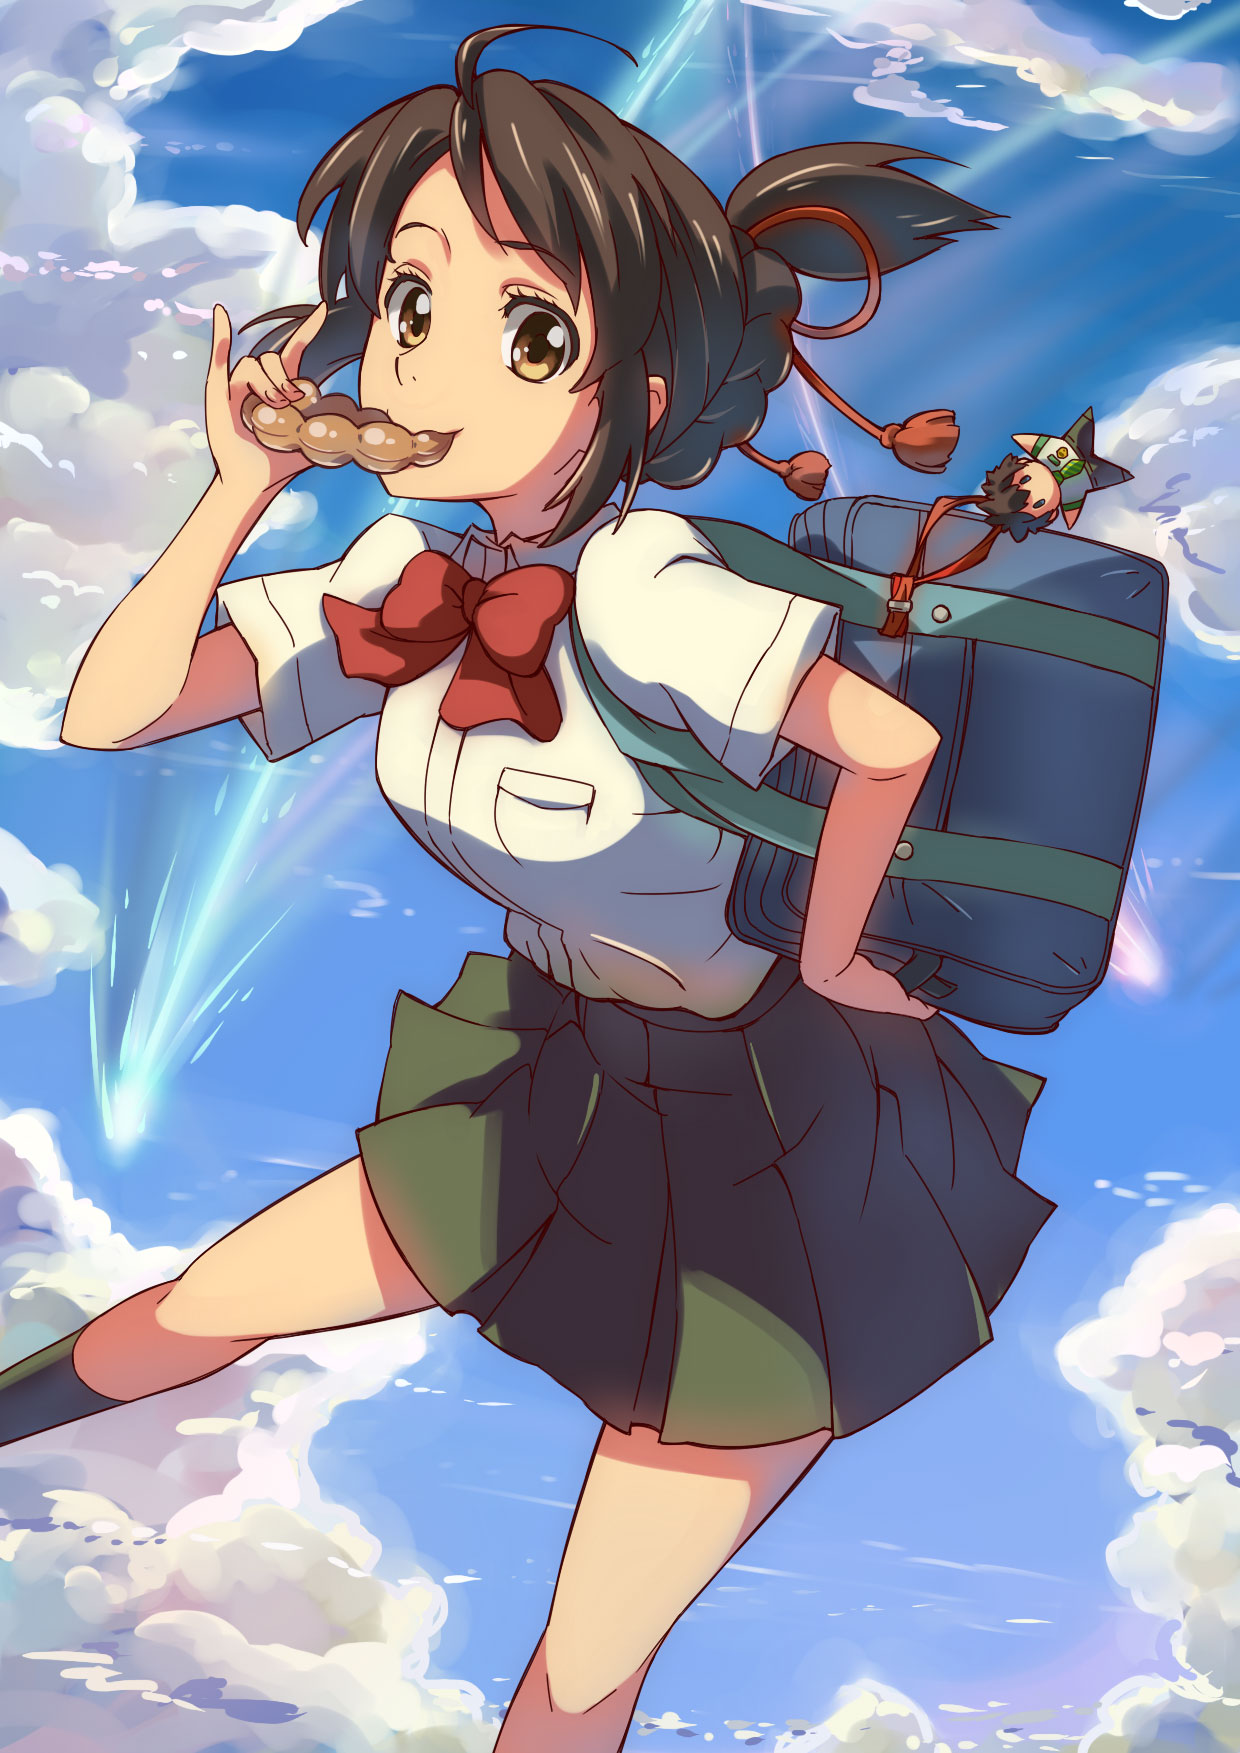 1girl ahoge bag black_hair blue_sky bow bowtie brown_eyes chiharu_(9654784) clouds comix_wave cute day dress_shirt eating highres kimi_no_na_wa looking_at_viewer miniskirt miyamizu_mitsuha pleated_skirt red_bow red_neckwear school_bag school_uniform shirt short_hair short_sleeves skirt sky solo tied_hair toho_corp. white_shirt